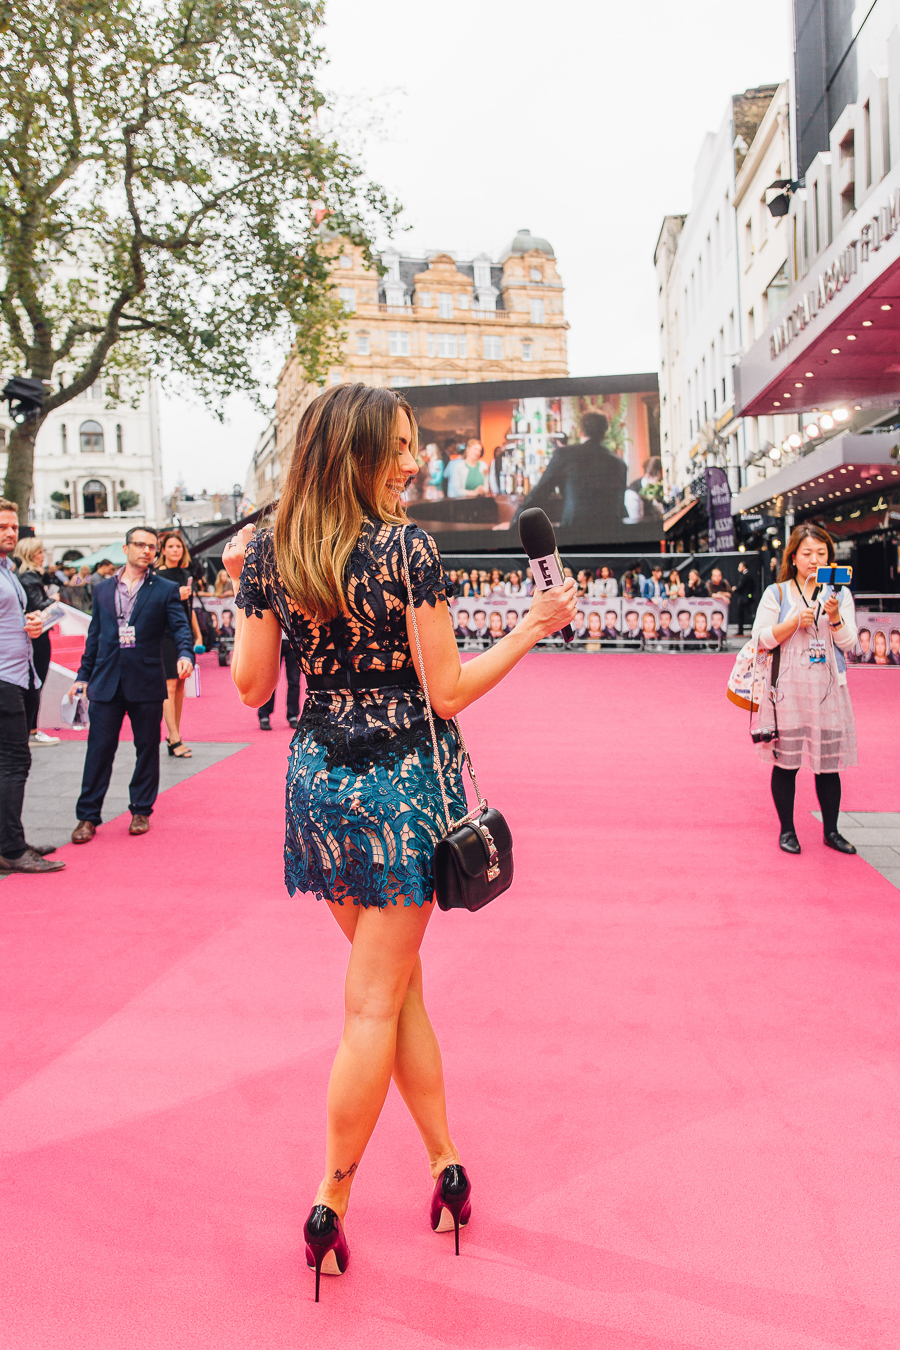 Sabrina Chakici E! UK Ireland - Bridget Jones Baby world premiere - clutch and carry on blog - E! Host UK & Ireland_-18